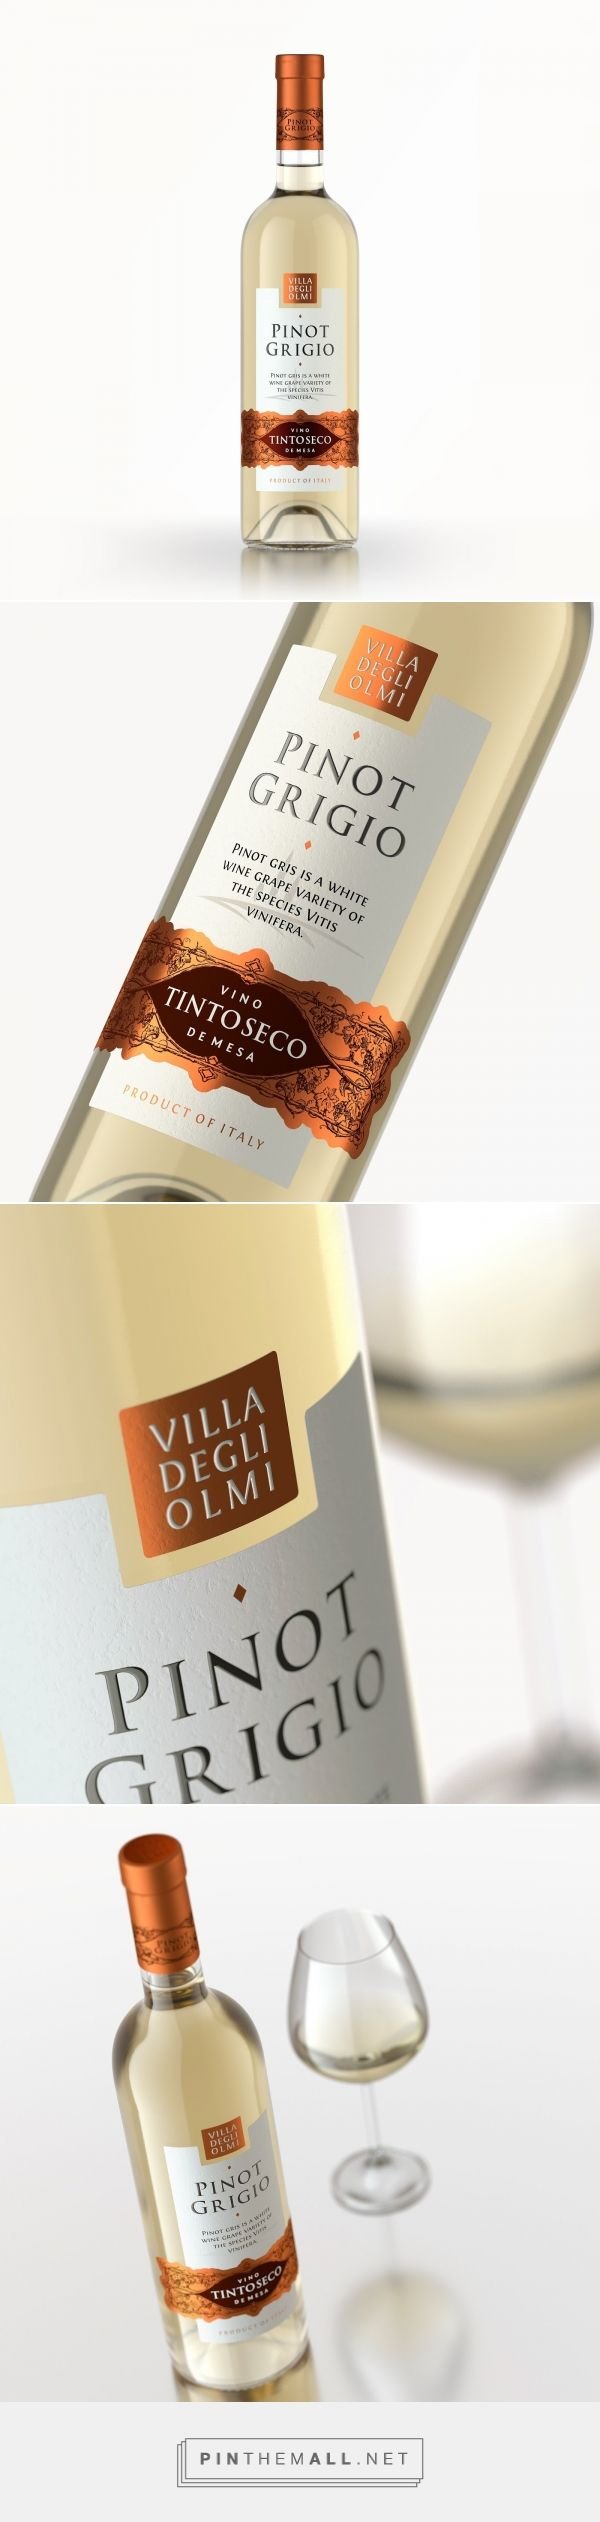 Pinot Grigio - Packaging of the World - Creative Package Design Gallery - http://www.packagingoftheworld.com/2017/03/pinot-grigio.html